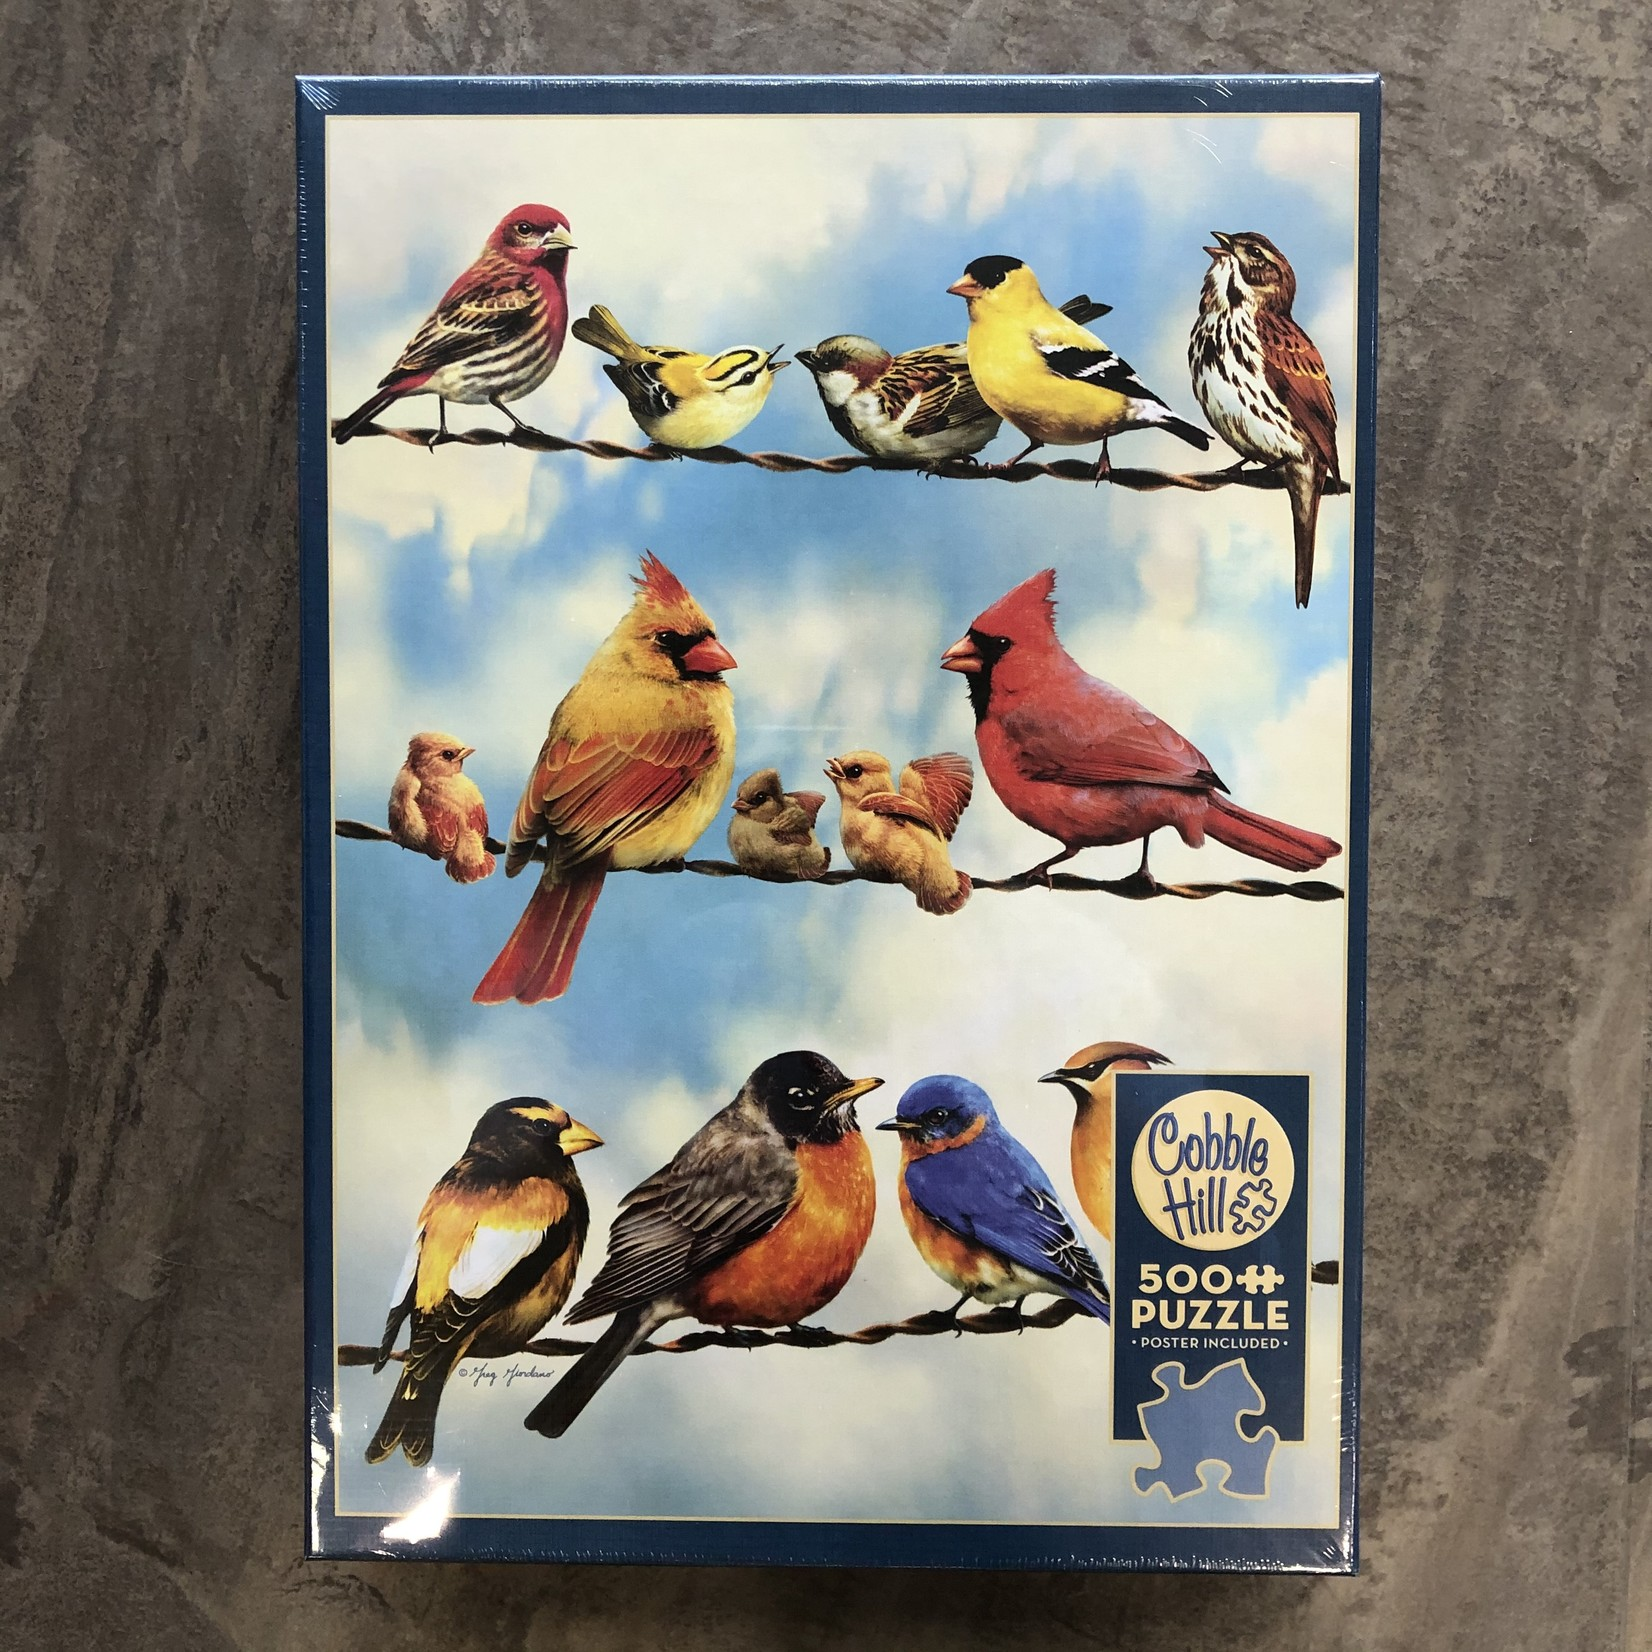 Cobble Hill Puzzles Birds on a Wire - 500 pc Puzzle